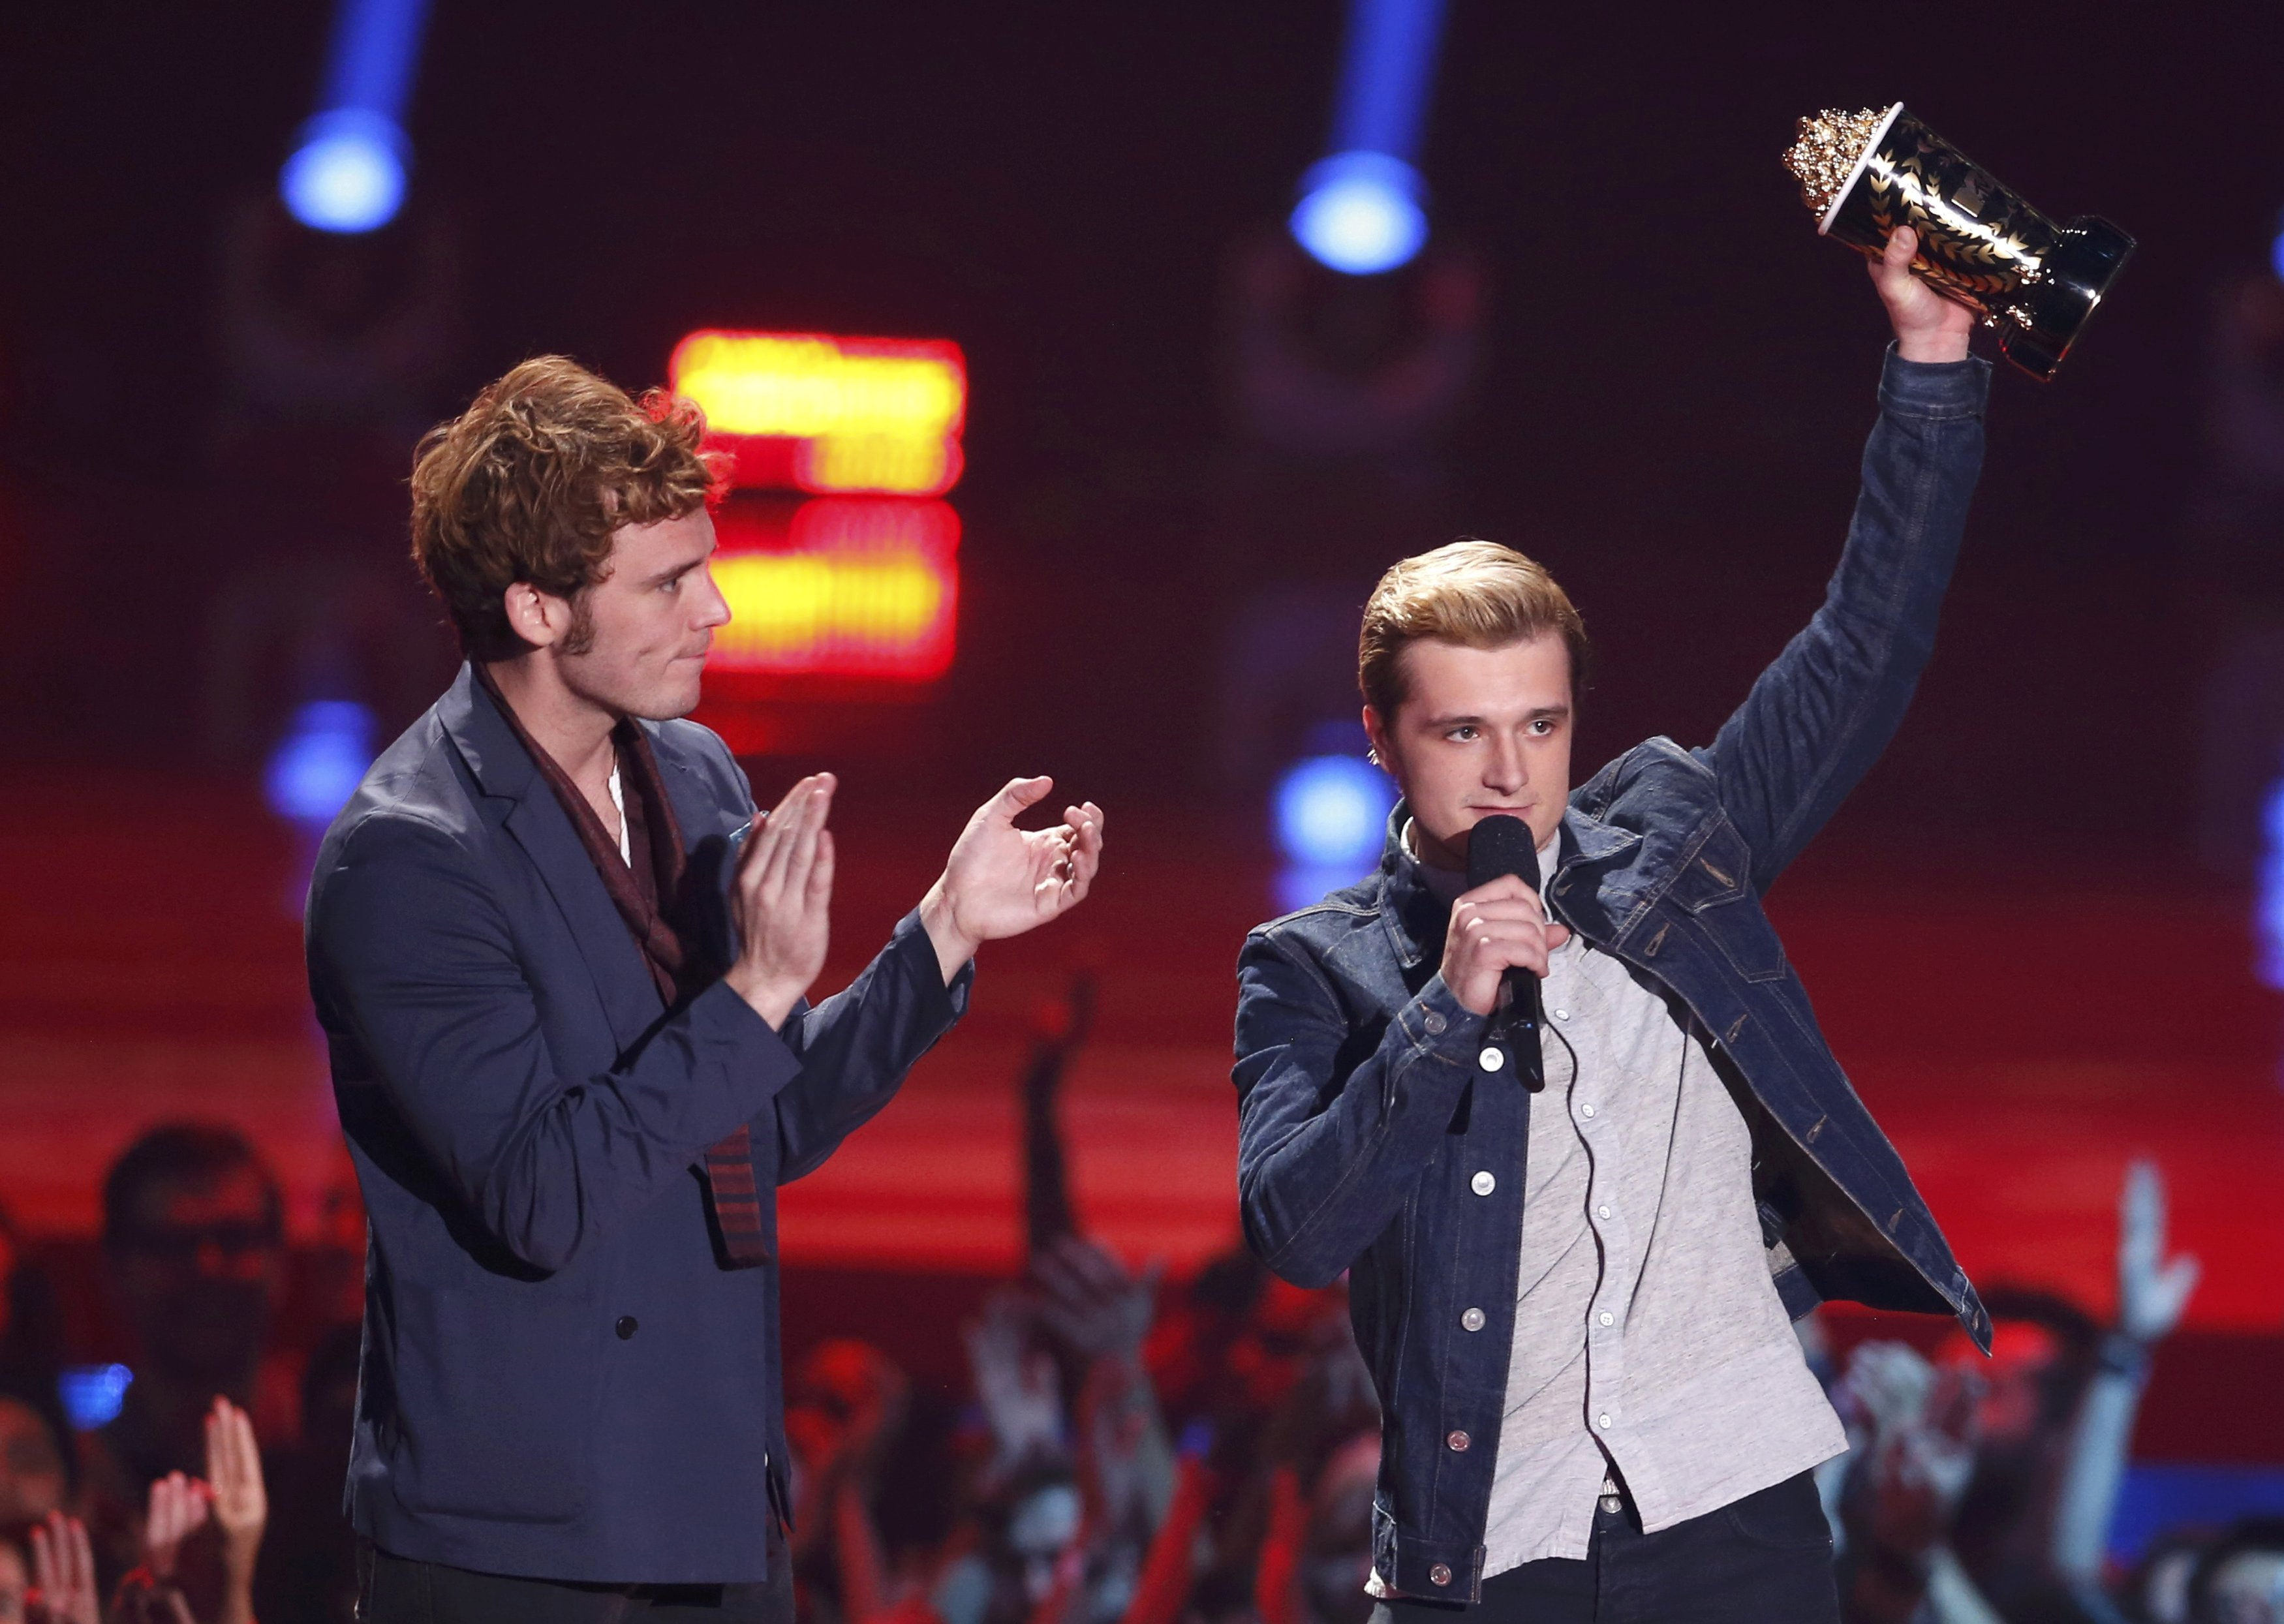 From left: Sam Claflin and Josh Hutcherson accept the award for Best Movie of the Year for  The Hunger Games: Catching Fire  at the 2014 MTV Movie Awards in Los Angeles, on April 13, 2014.